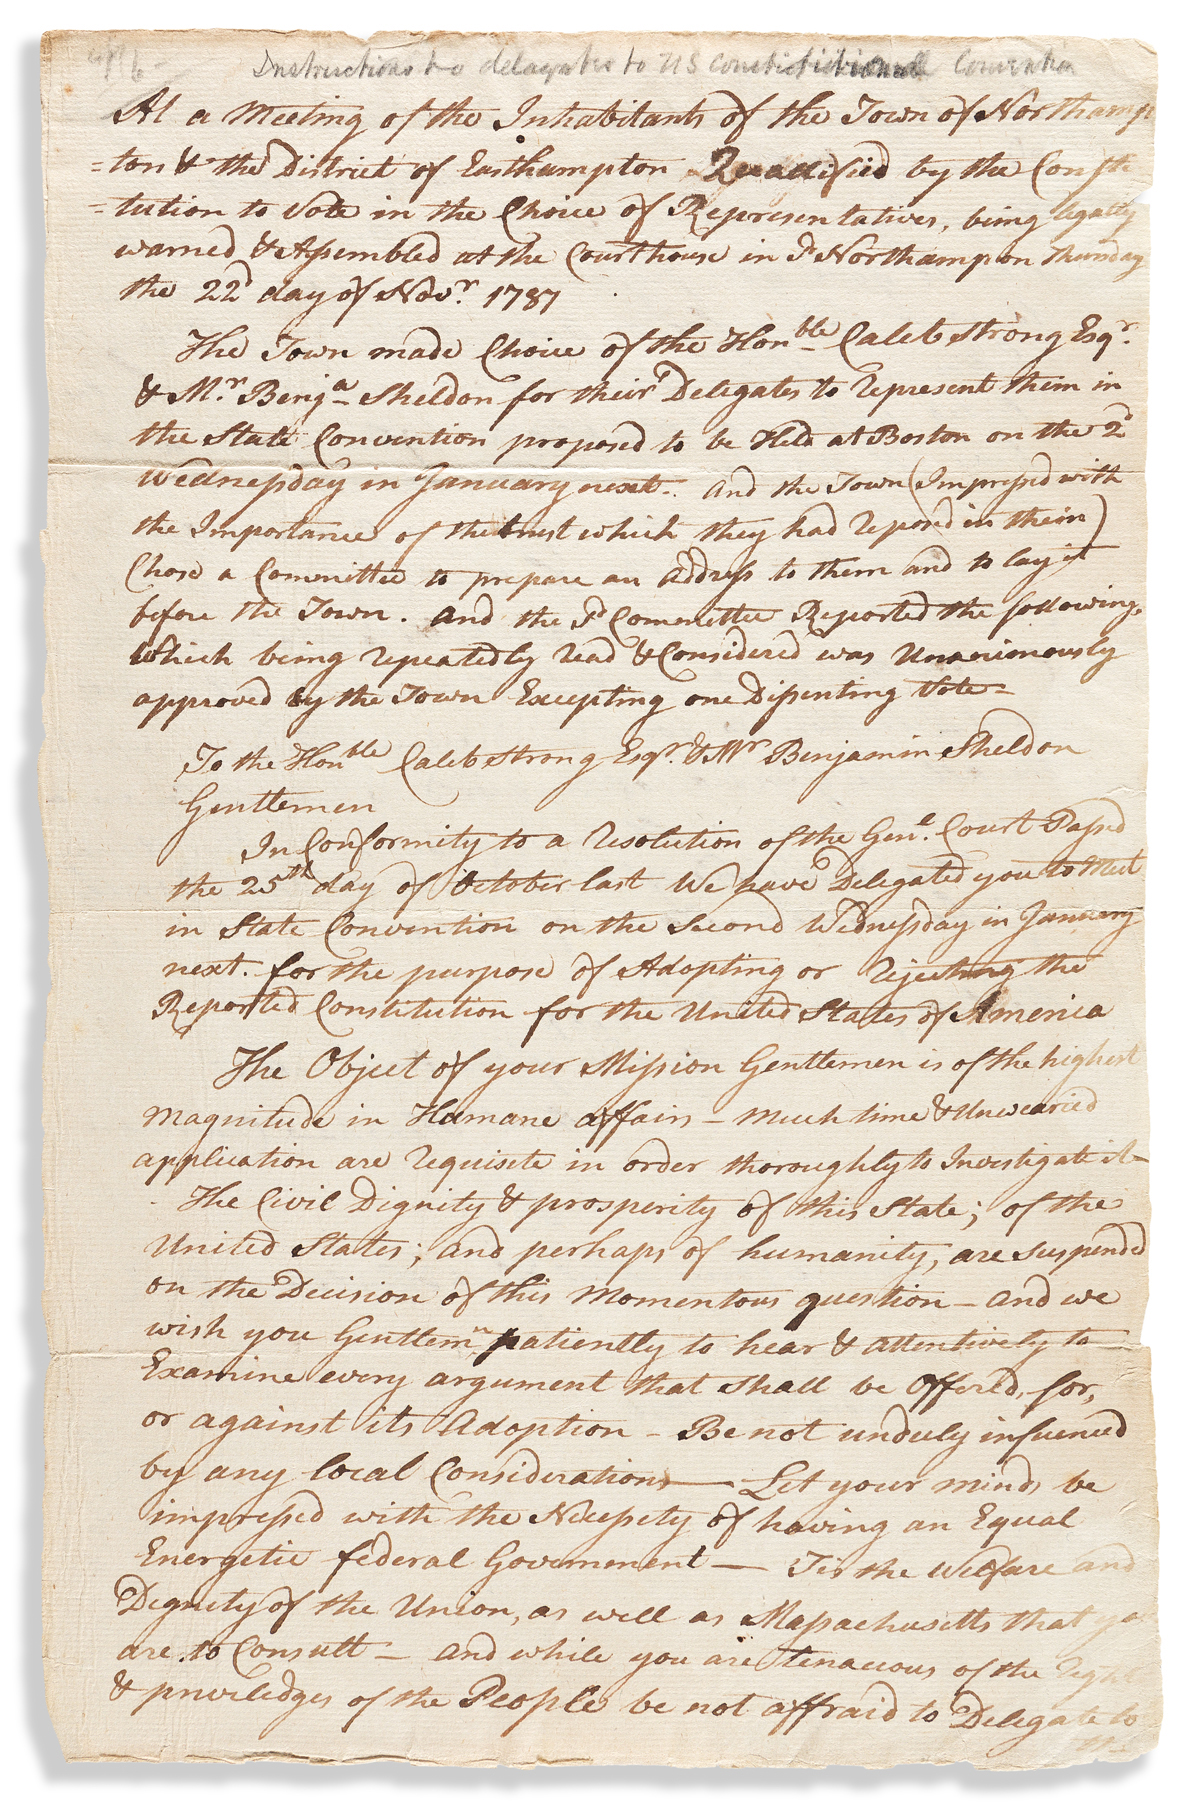 (CONSTITUTION.) Samuel Henshaw. Inspirational letter to two Massachusetts delegates to U.S. Constitutional Convention.